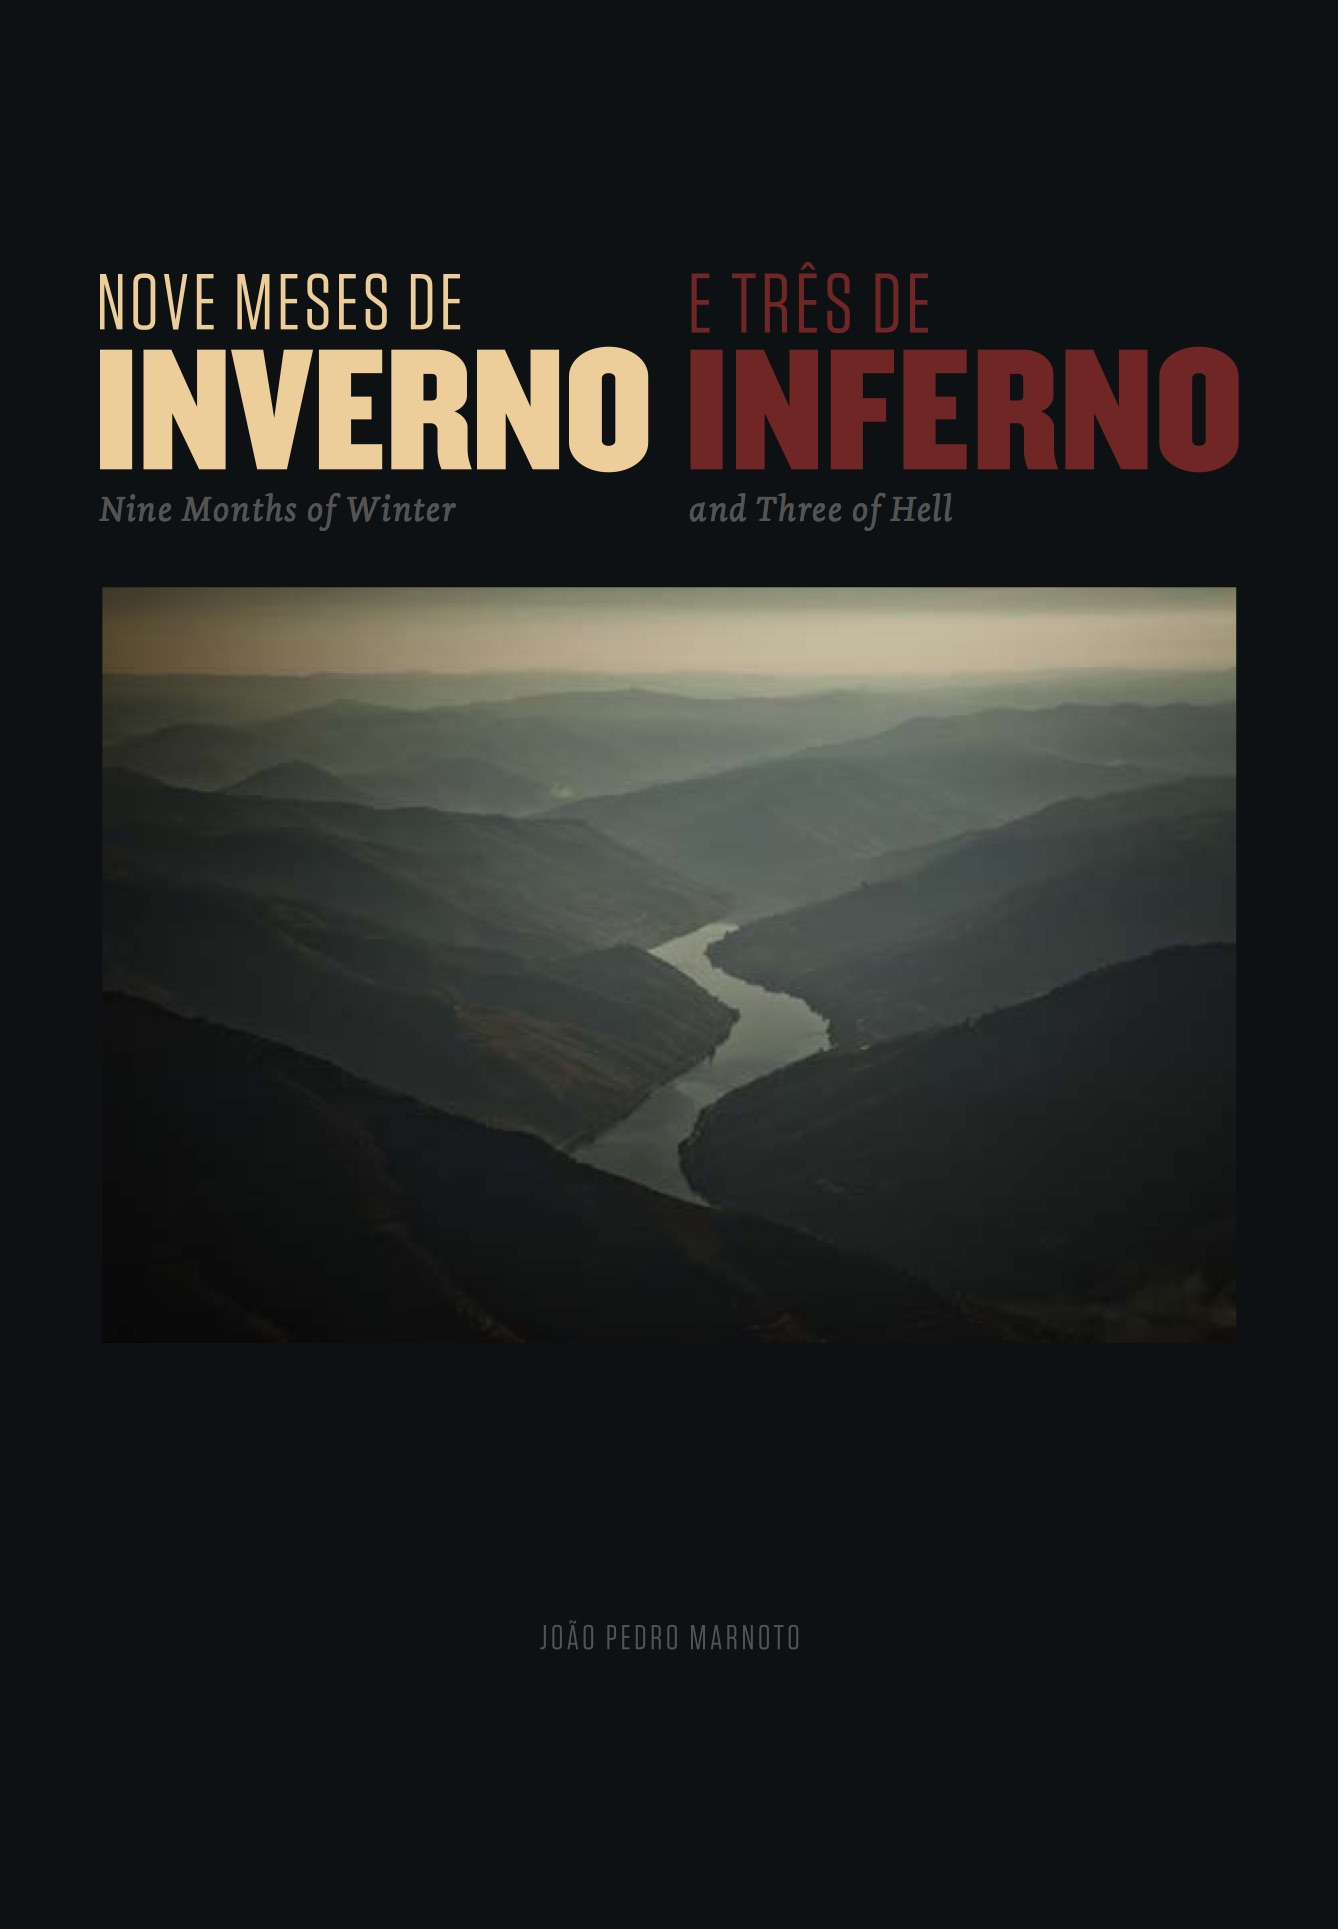 Publisher:Orgal Impressores ISBN (978 972 780 623 2) 17x24.5cm 168 pages Hardcover 1000 copies edition